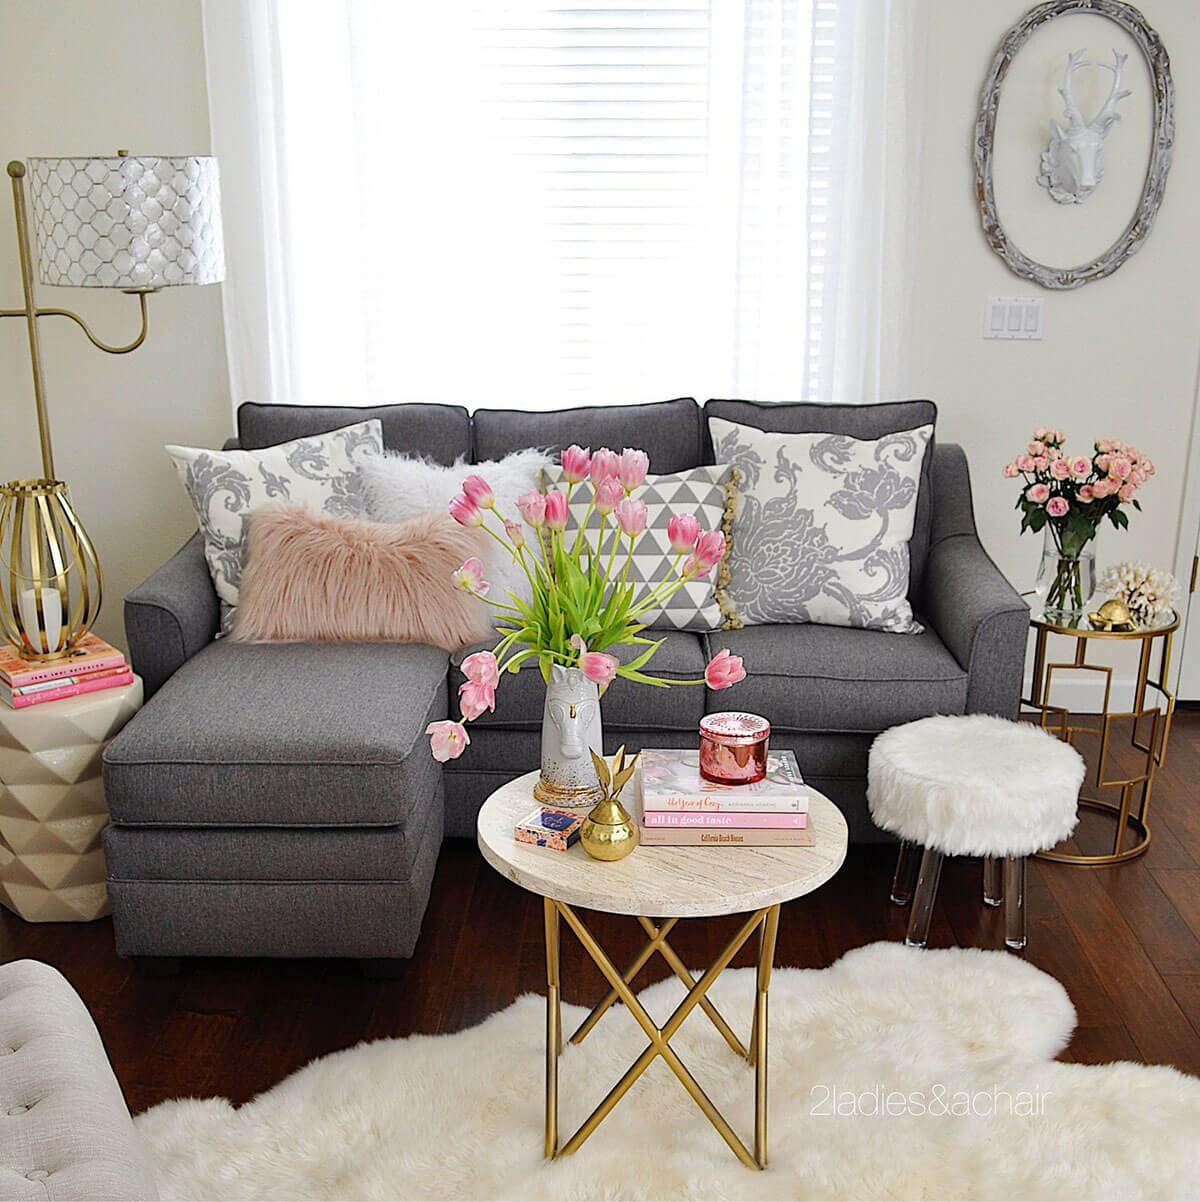 25+ Best Small Living Room Decor and Design Ideas for 2020 on Small Living Room Decorating Ideas  id=53250